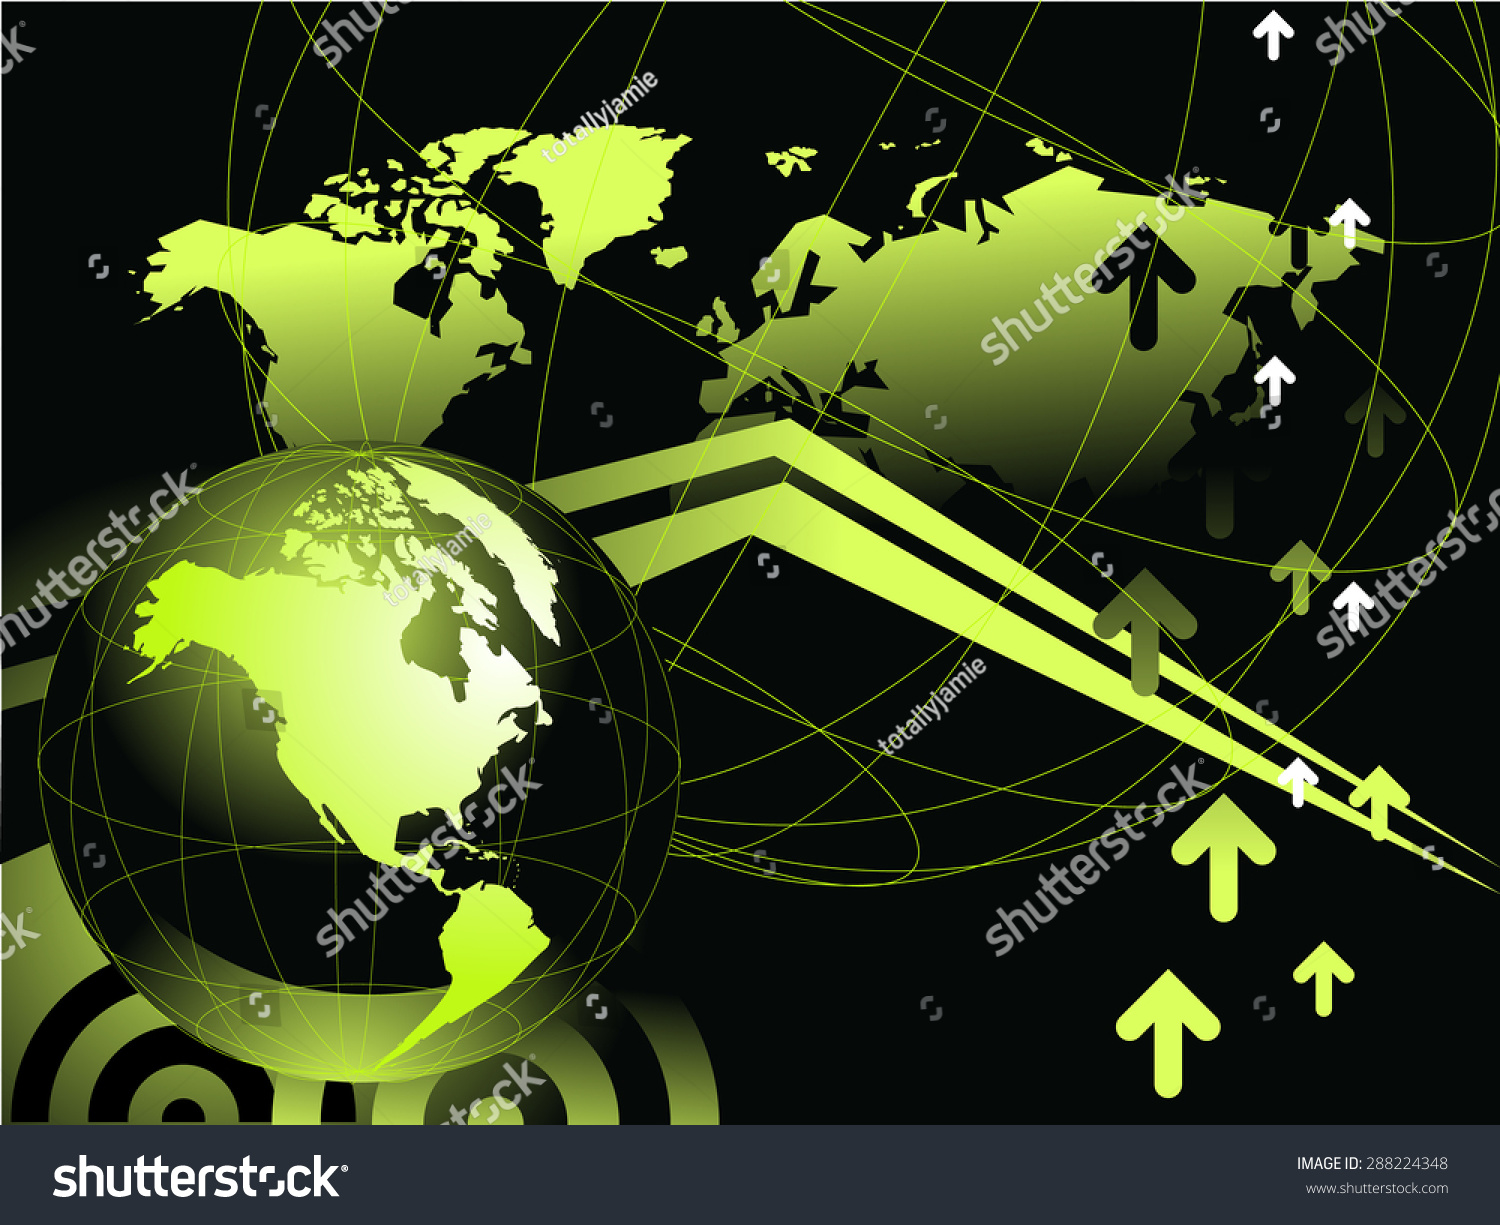 Neon green black world map globe stock vector royalty free neon green and black world map globe vector illustration background gumiabroncs Image collections